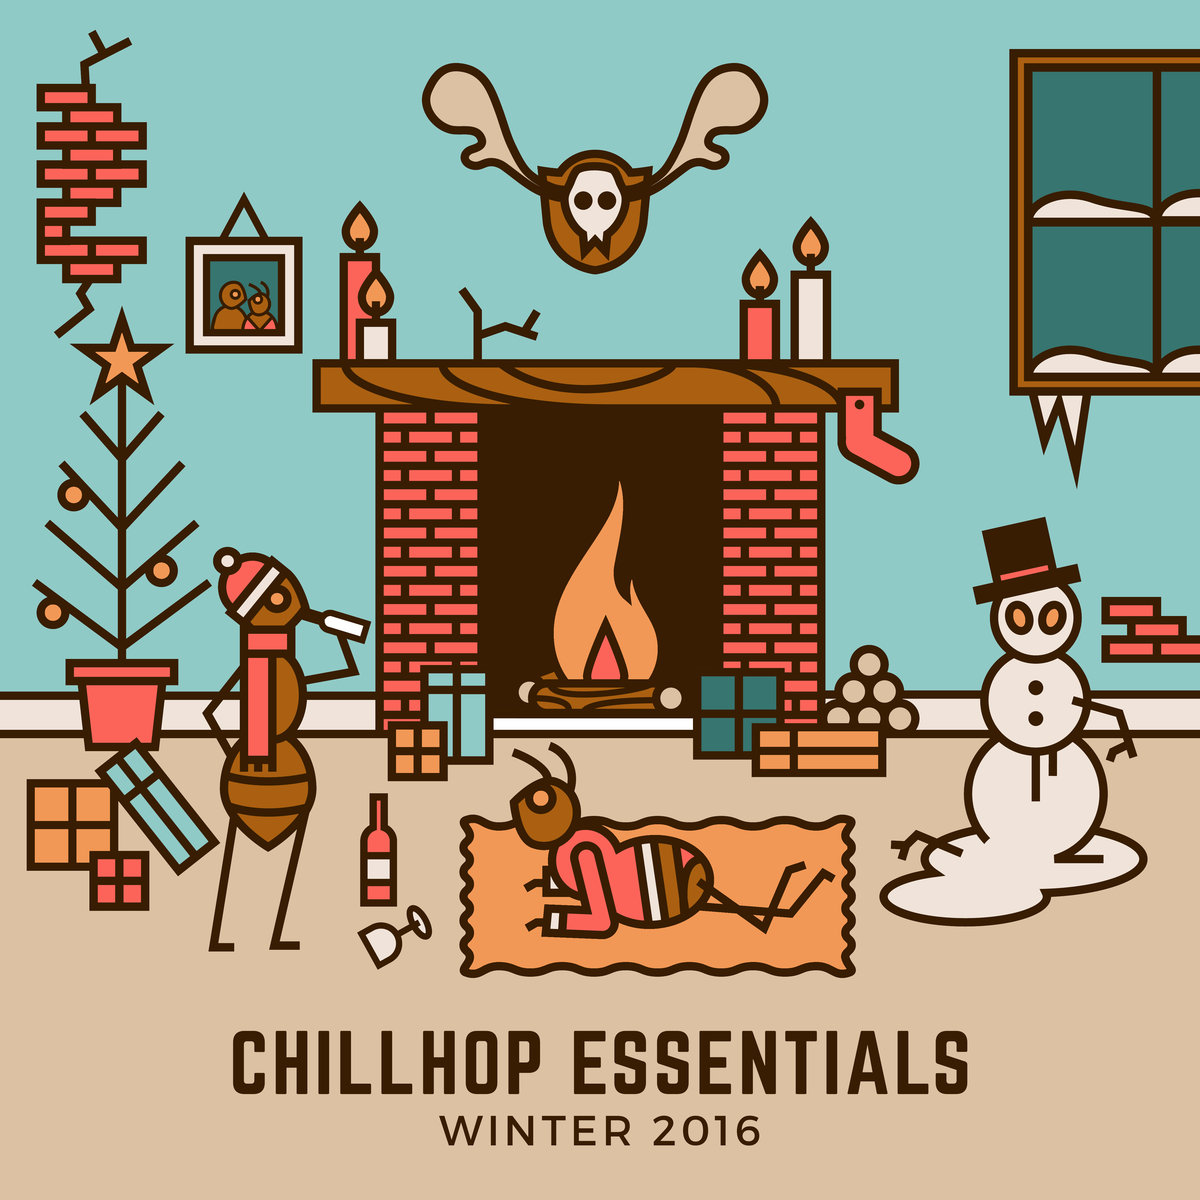 Chillhop Essentials - Winter 2016